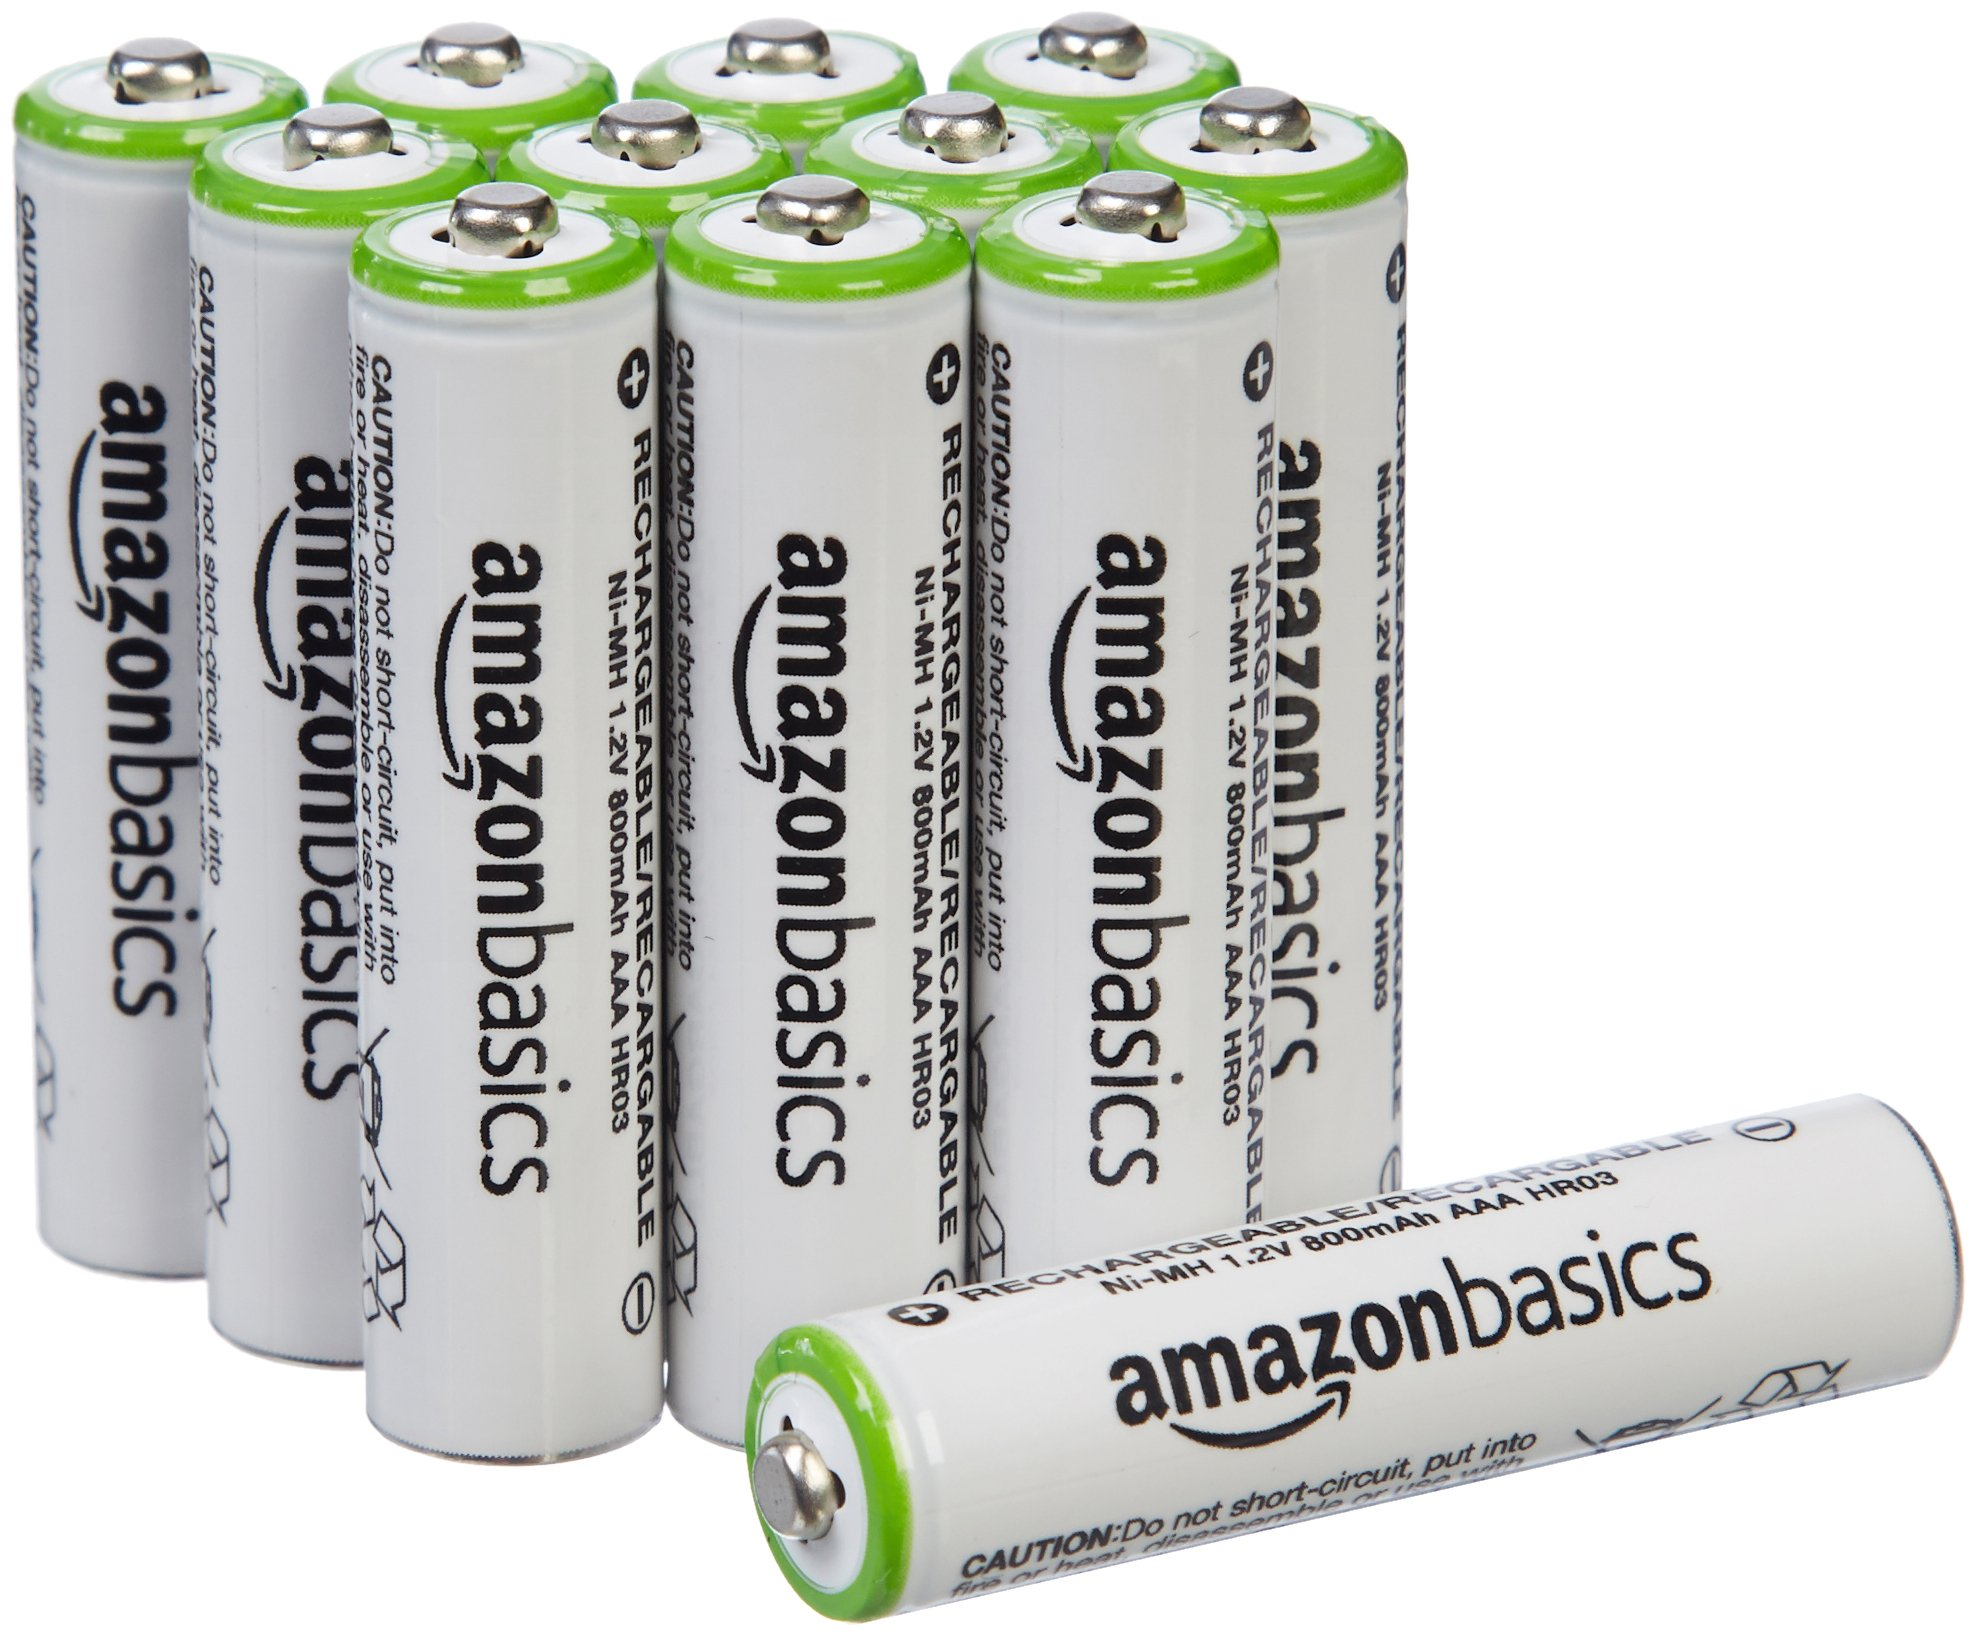 AmazonBasics AAA Rechargeable Batteries (12-Pack) Pre-charged - Battery Packaging May Vary by AmazonBasics